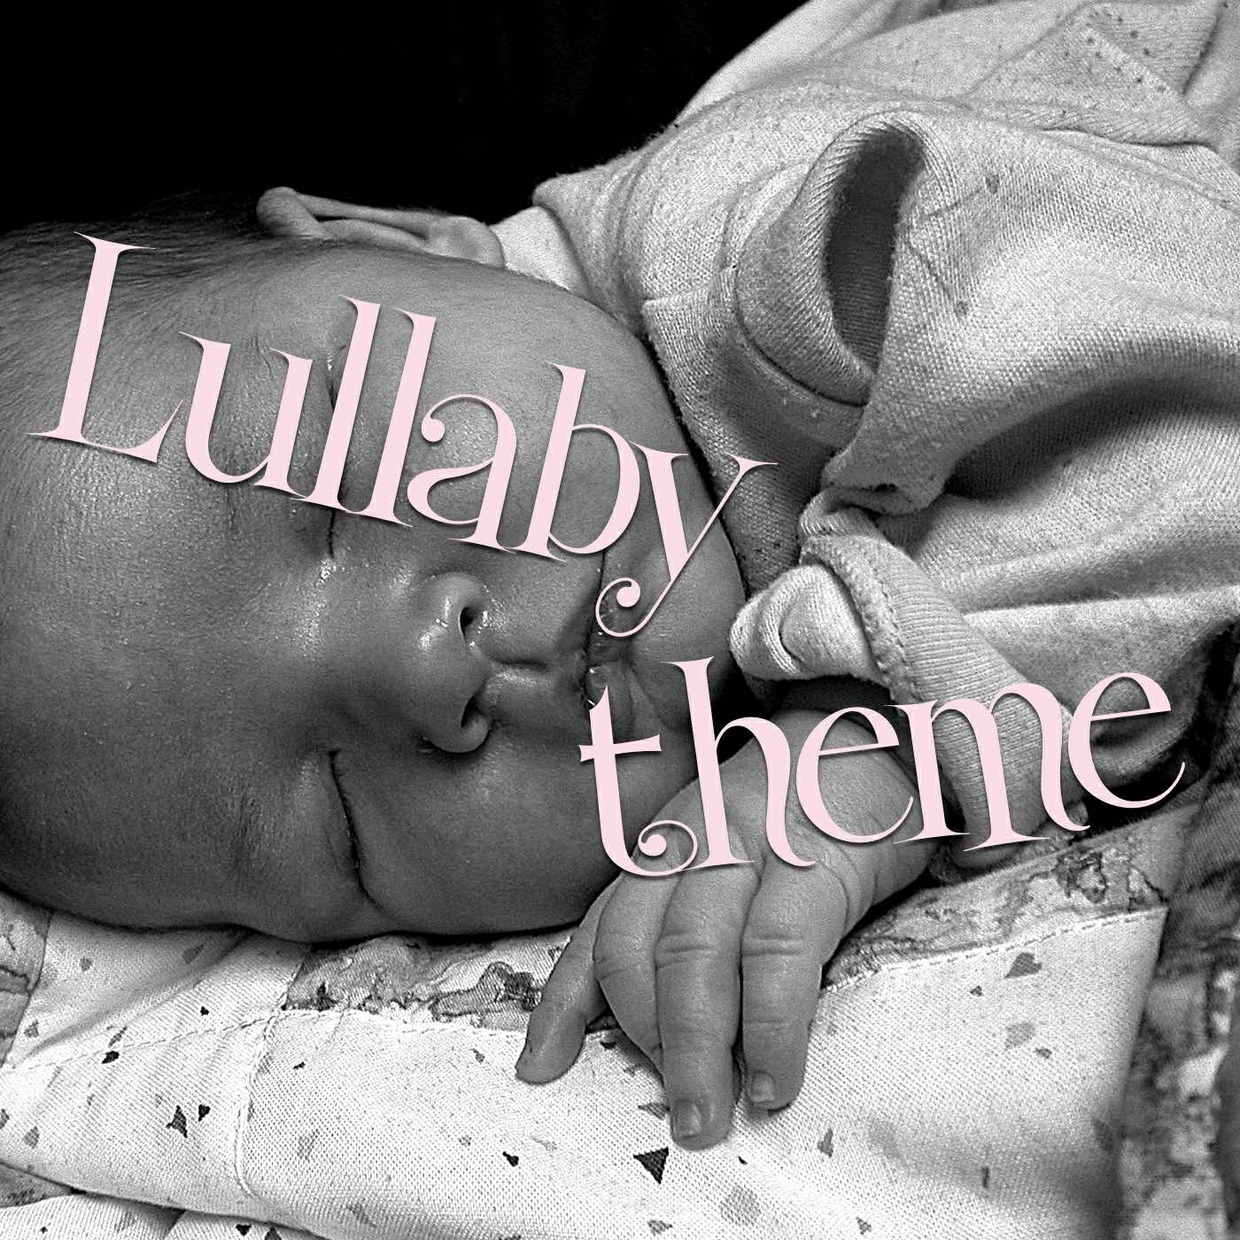 Lullaby theme